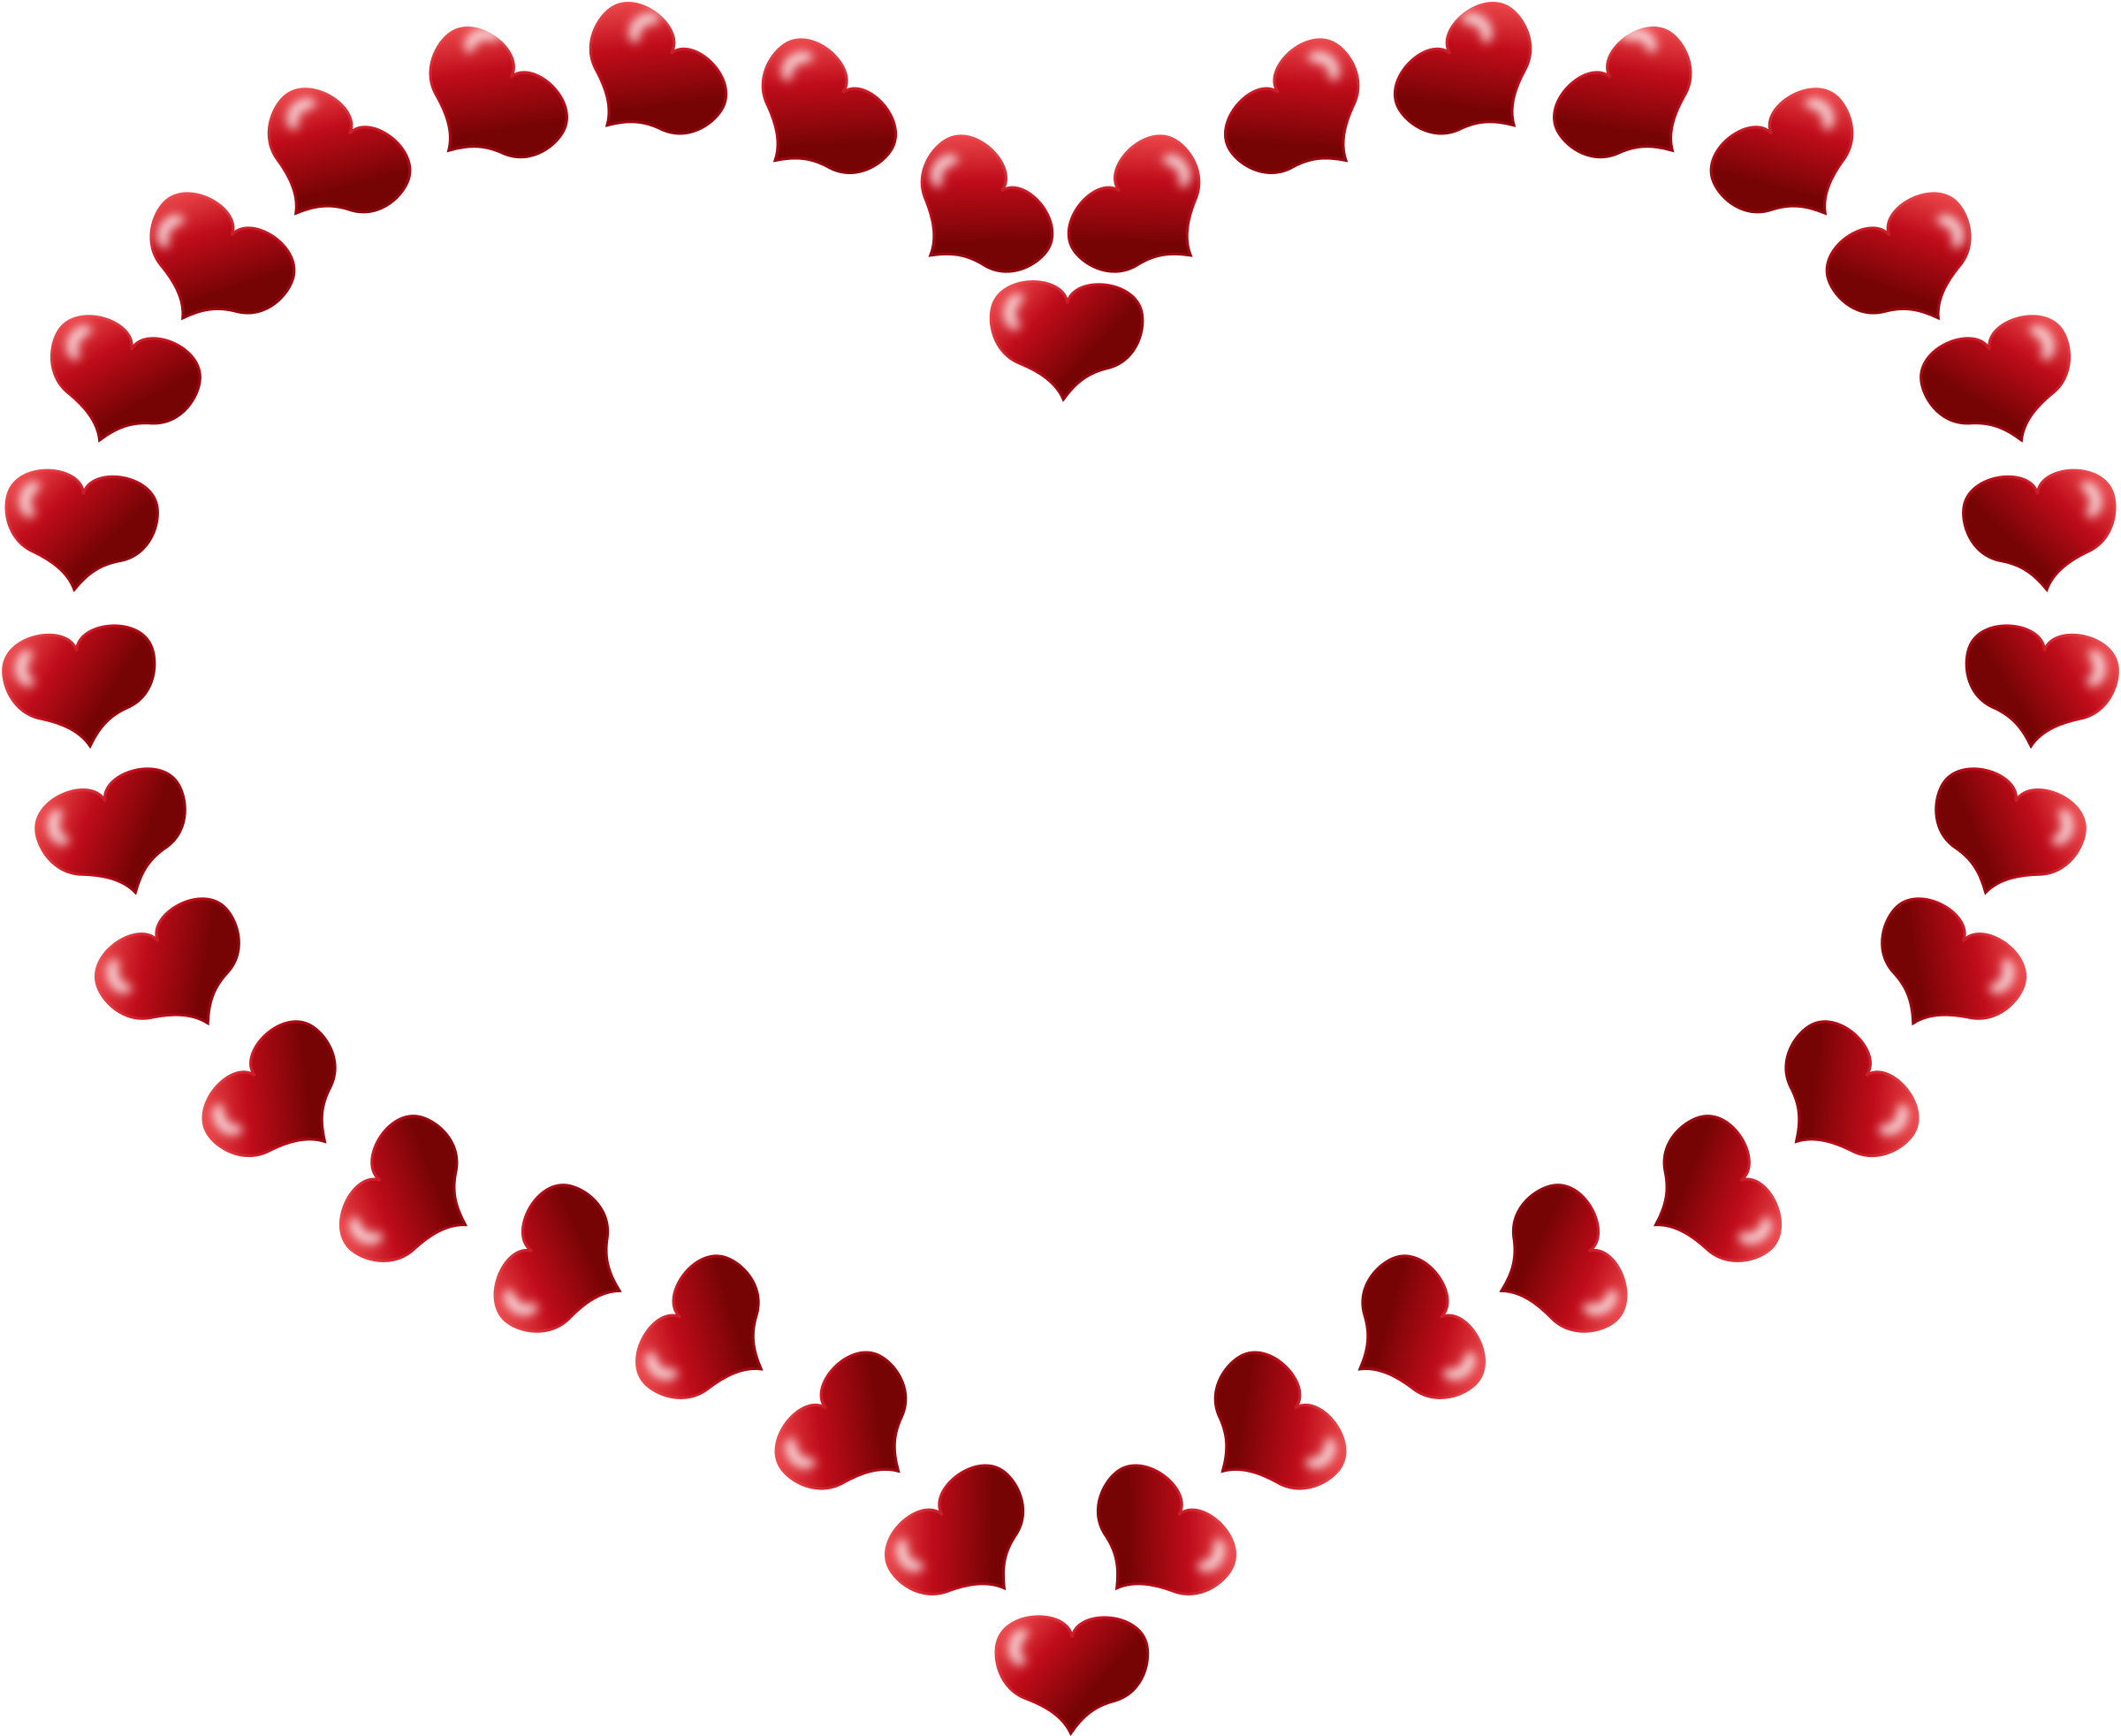 Clipart - Red Heart Shaped Border with Little Hearts